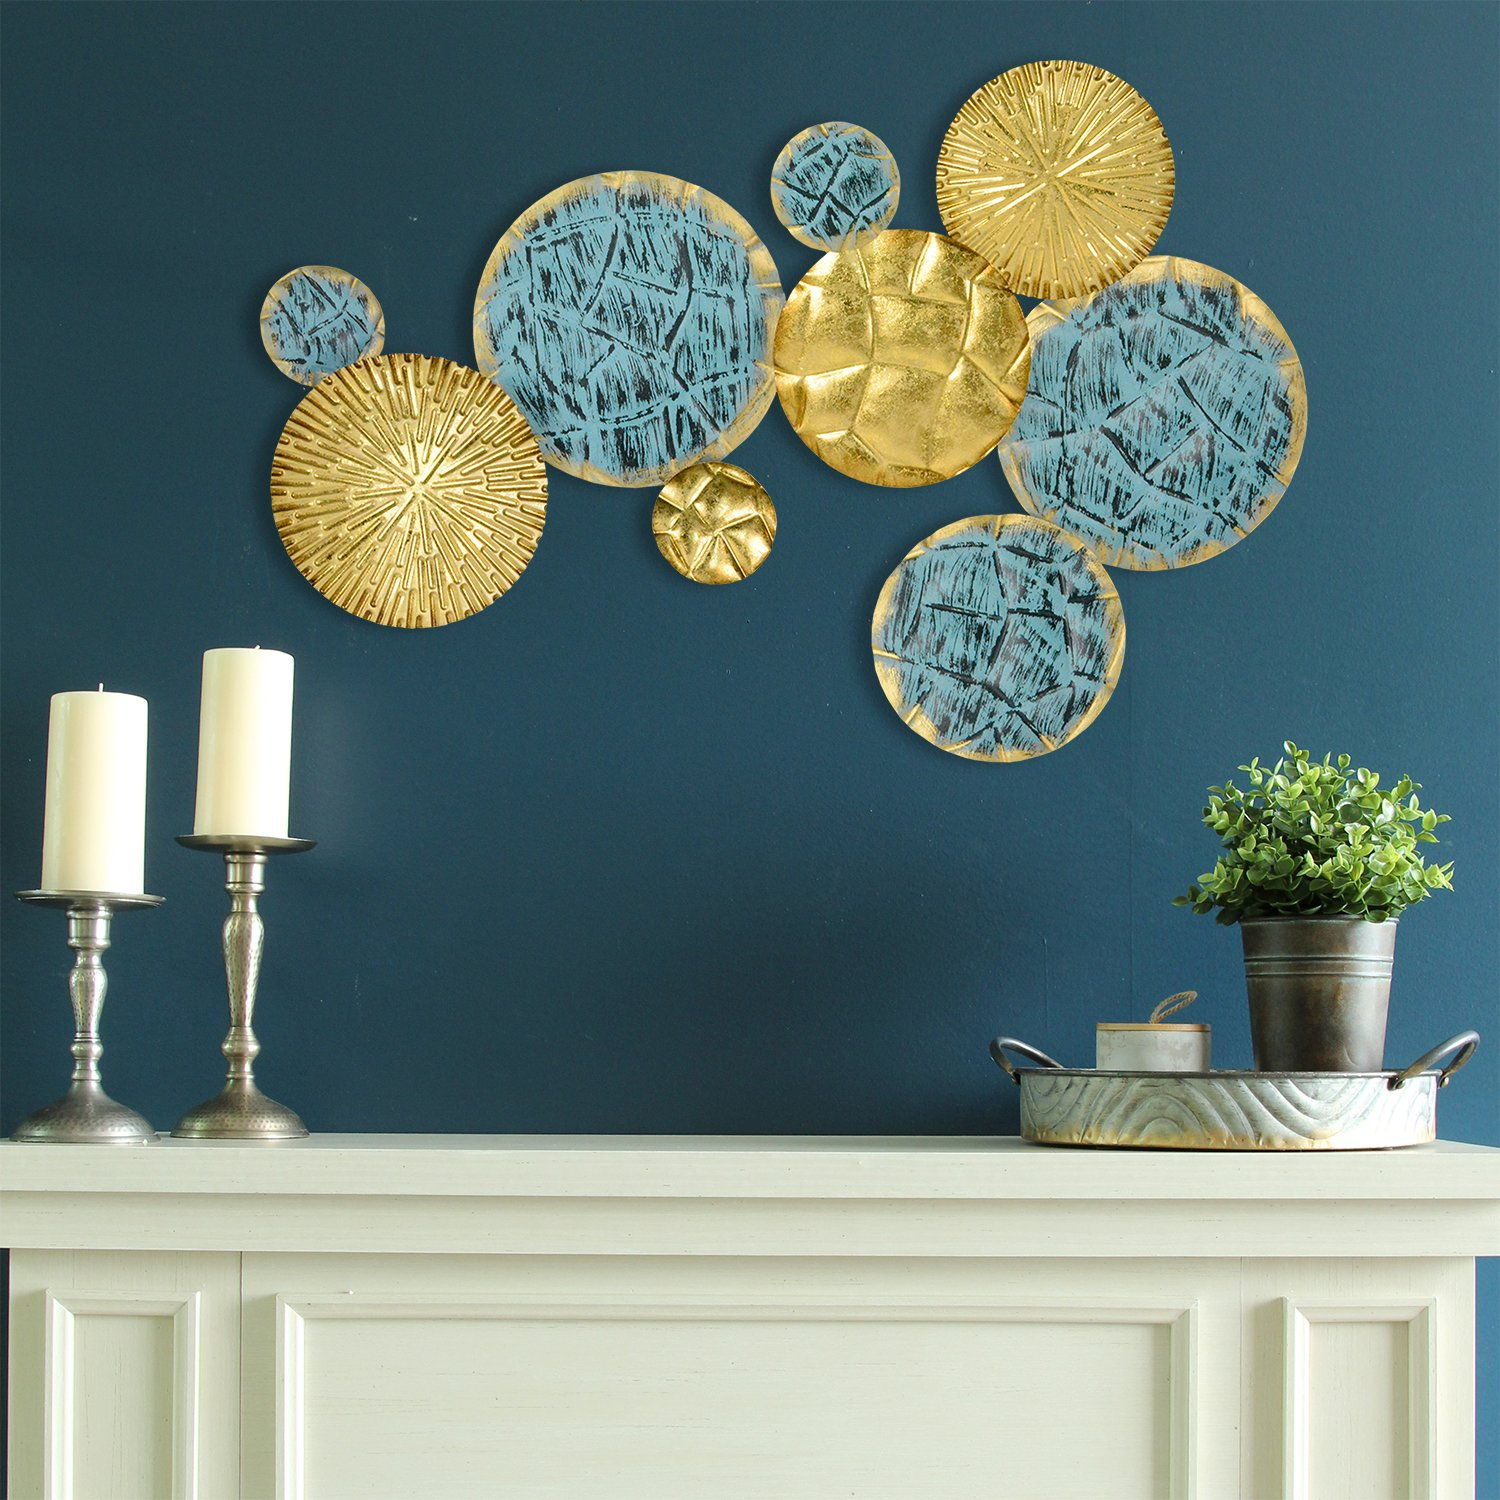 Walmart Home Decorations: Stratton Home Decor Jewels Of The Sea Metal Plates Wall